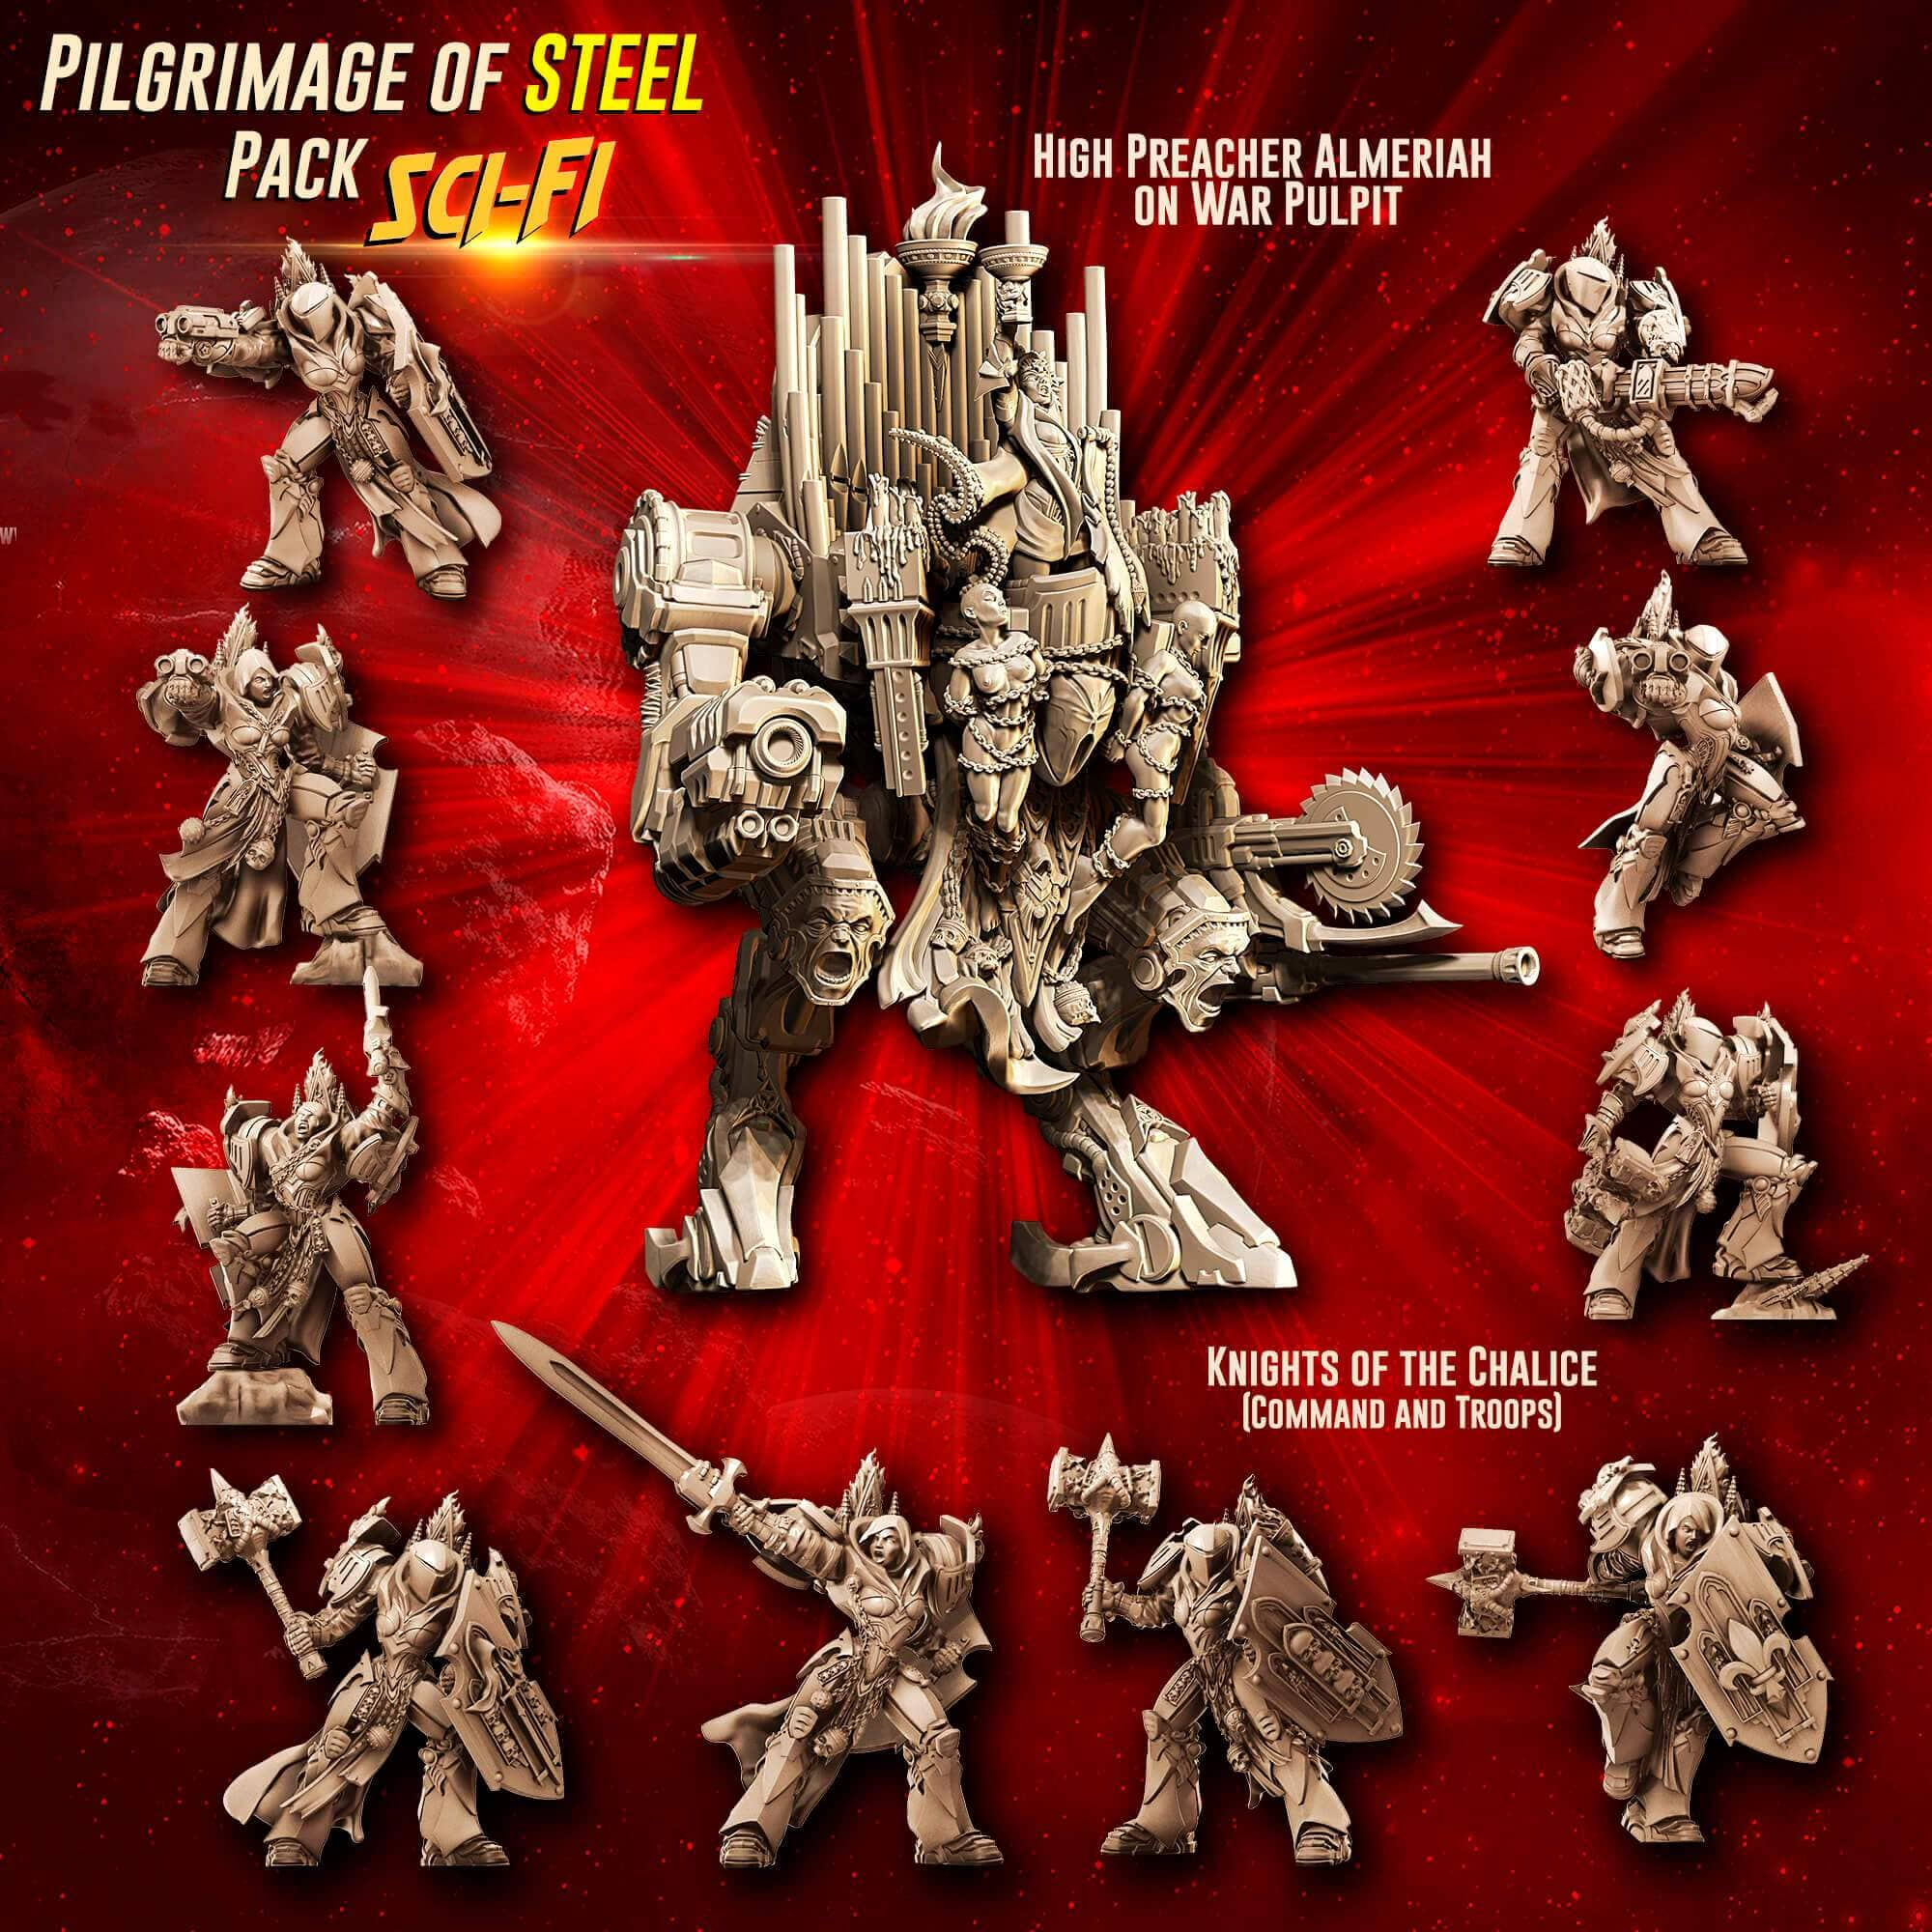 Pilgrimage of STEEL Pack feat. Almeriah (SoEM - SF) - Raging Heroes